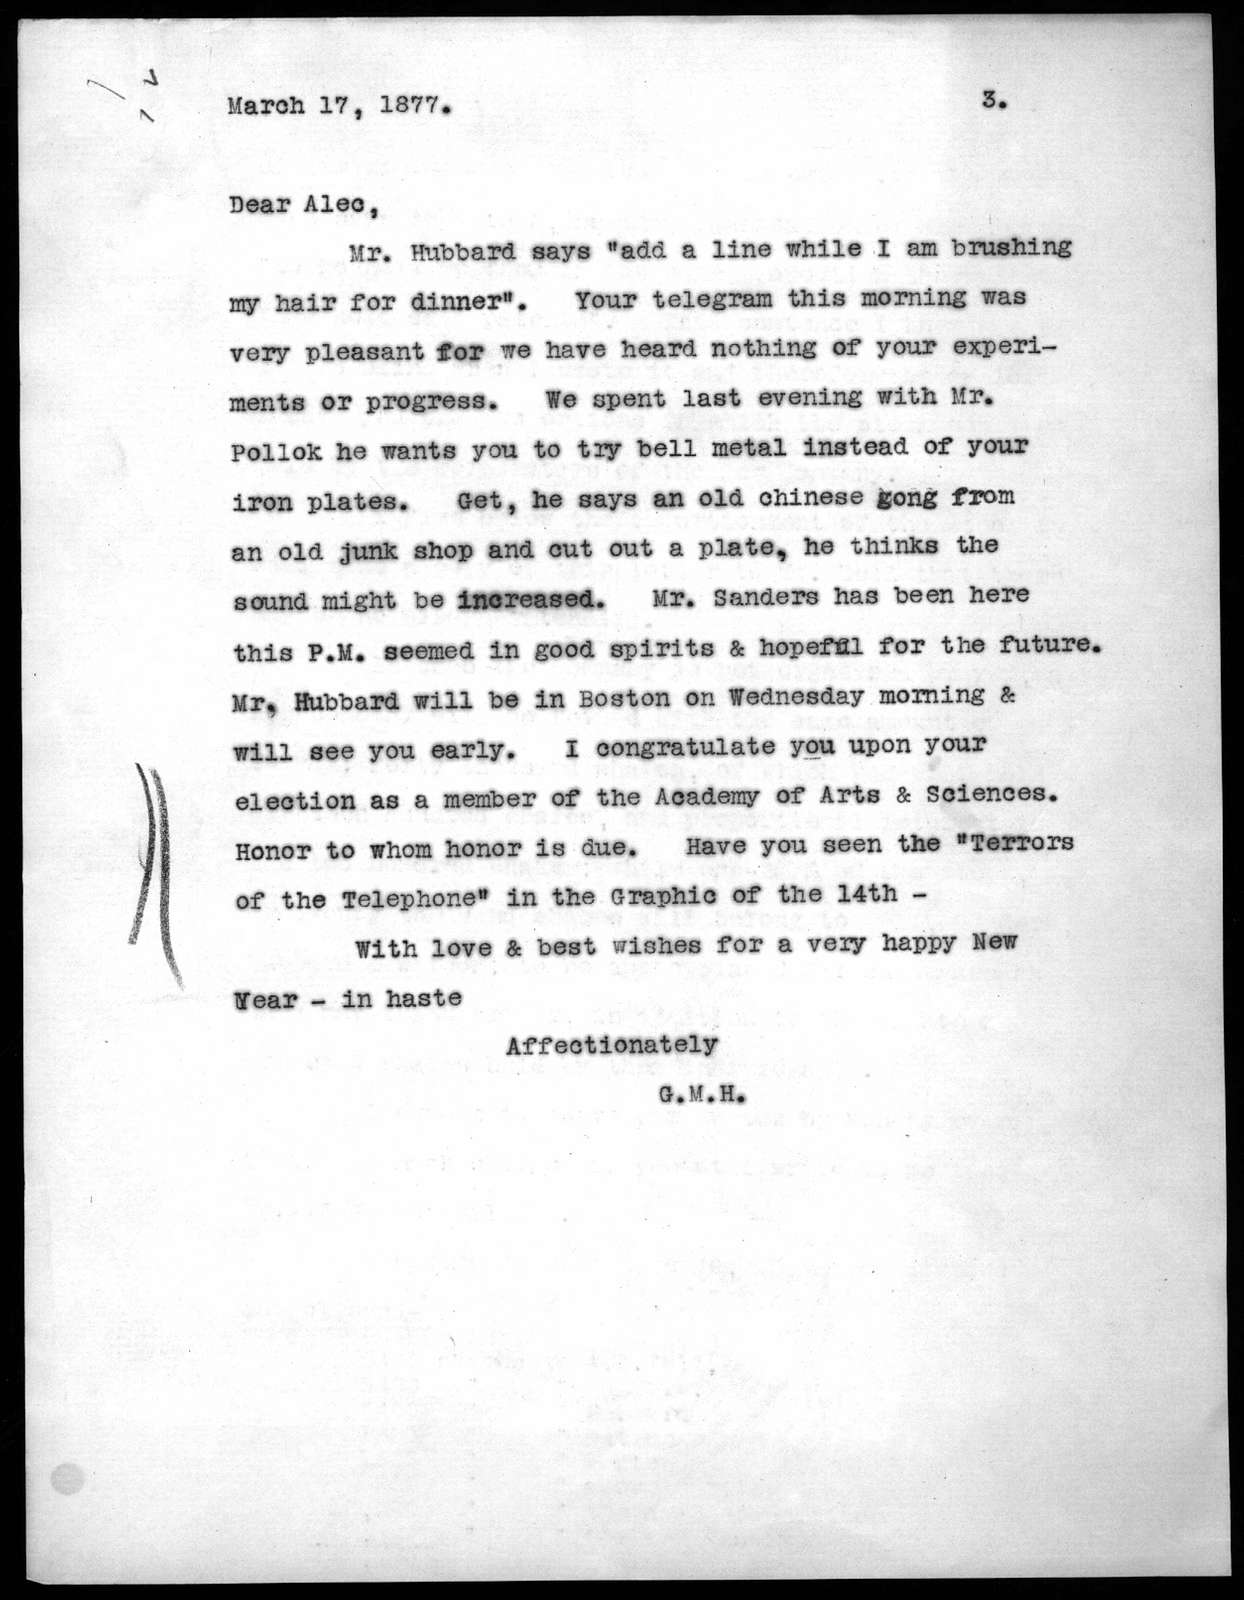 Letter from Gertrude McCurdy Hubbard to Alexander Graham Bell, March 17, 1877